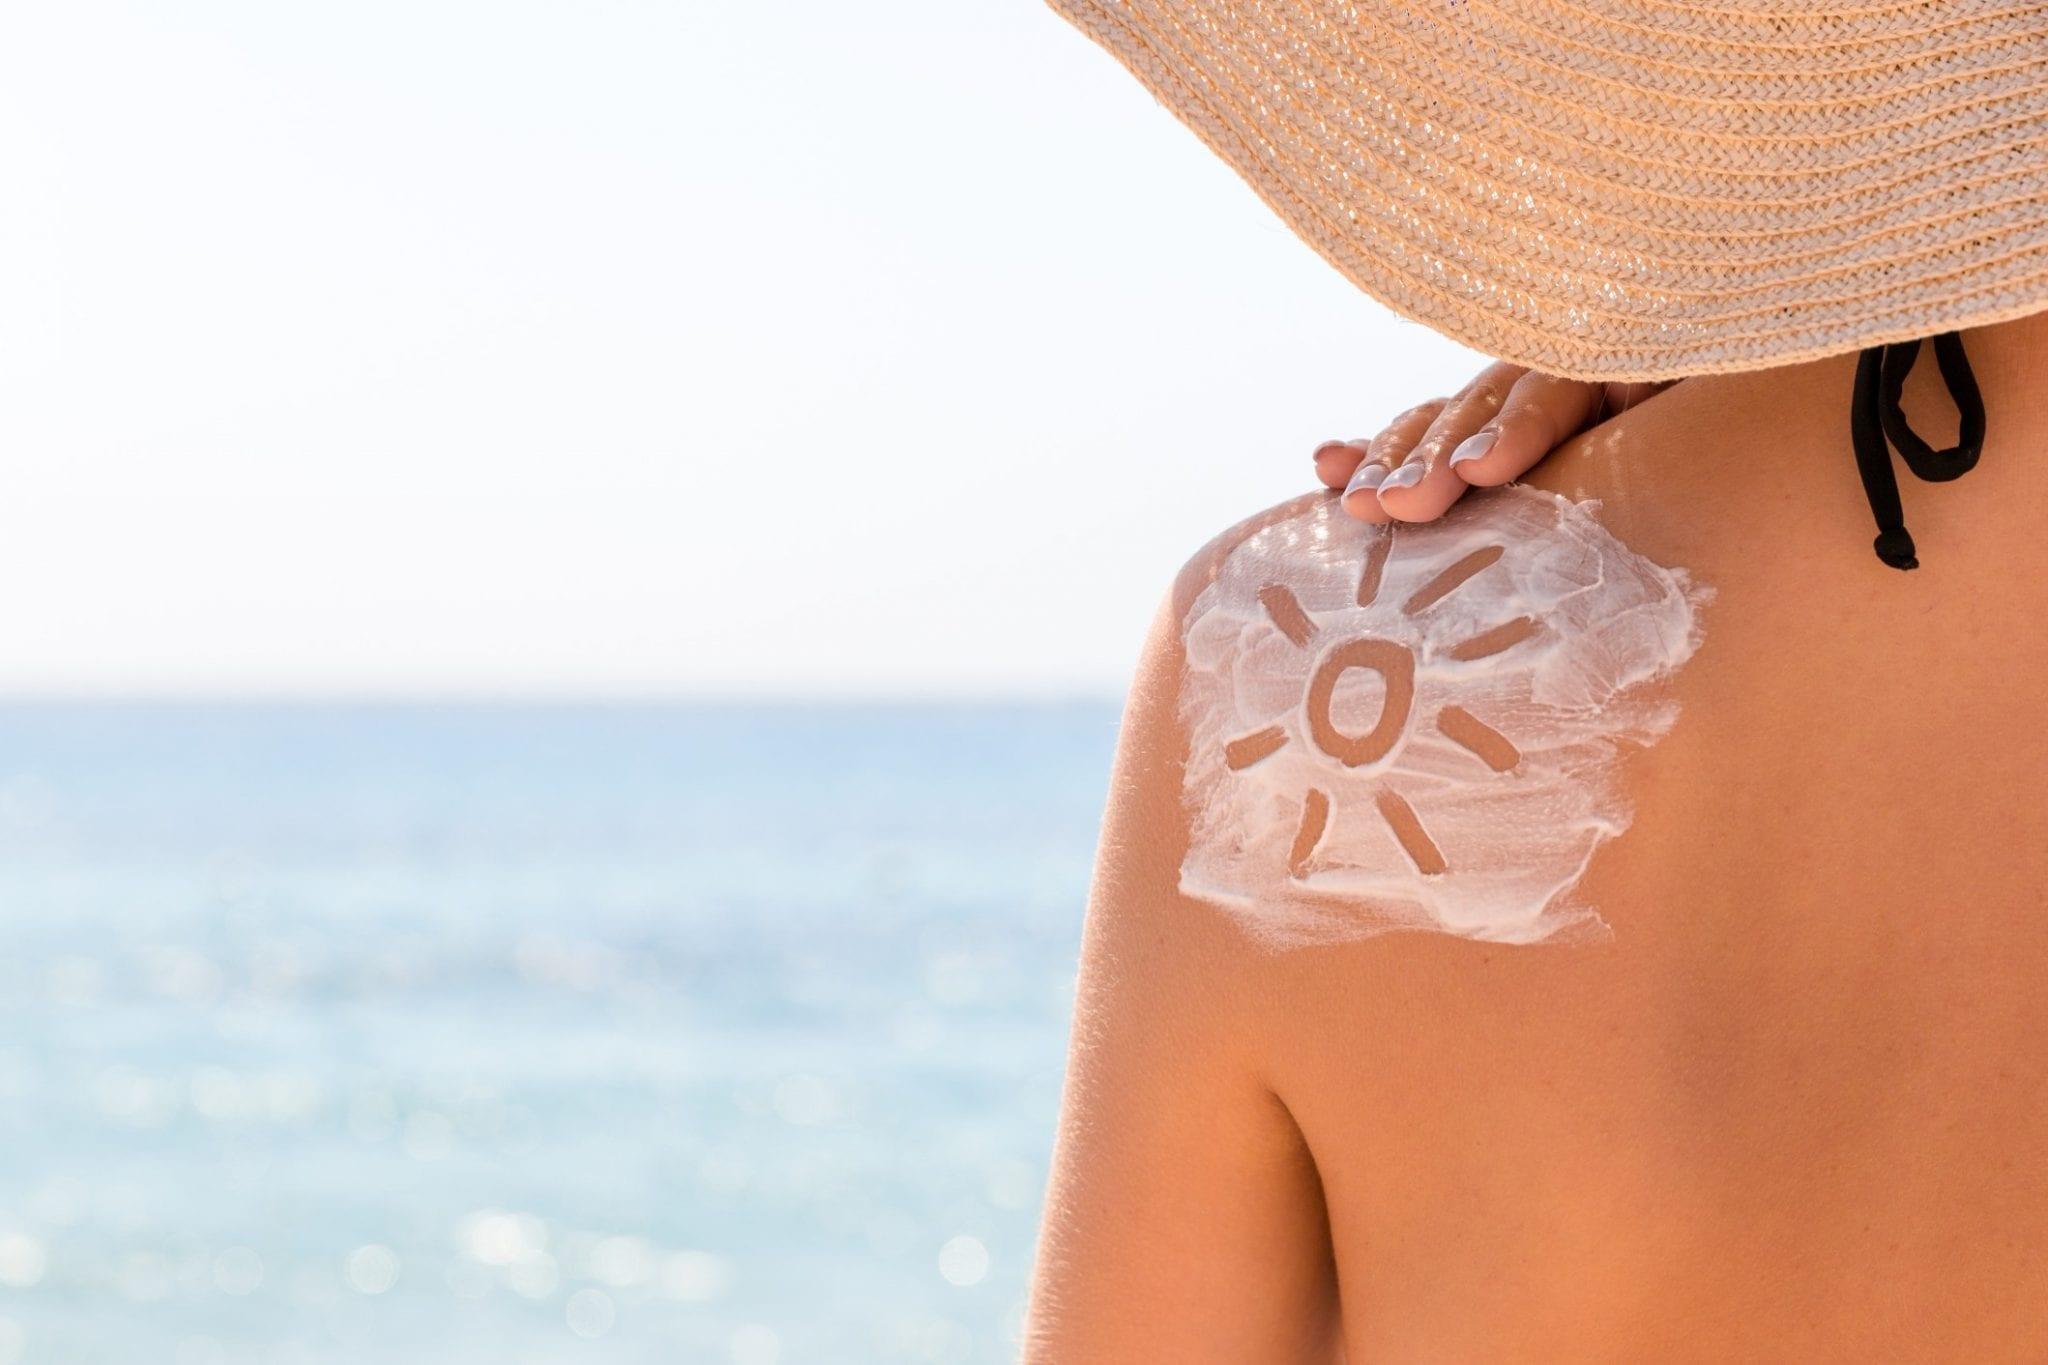 What Are Parabens And Why Are They So Bad?